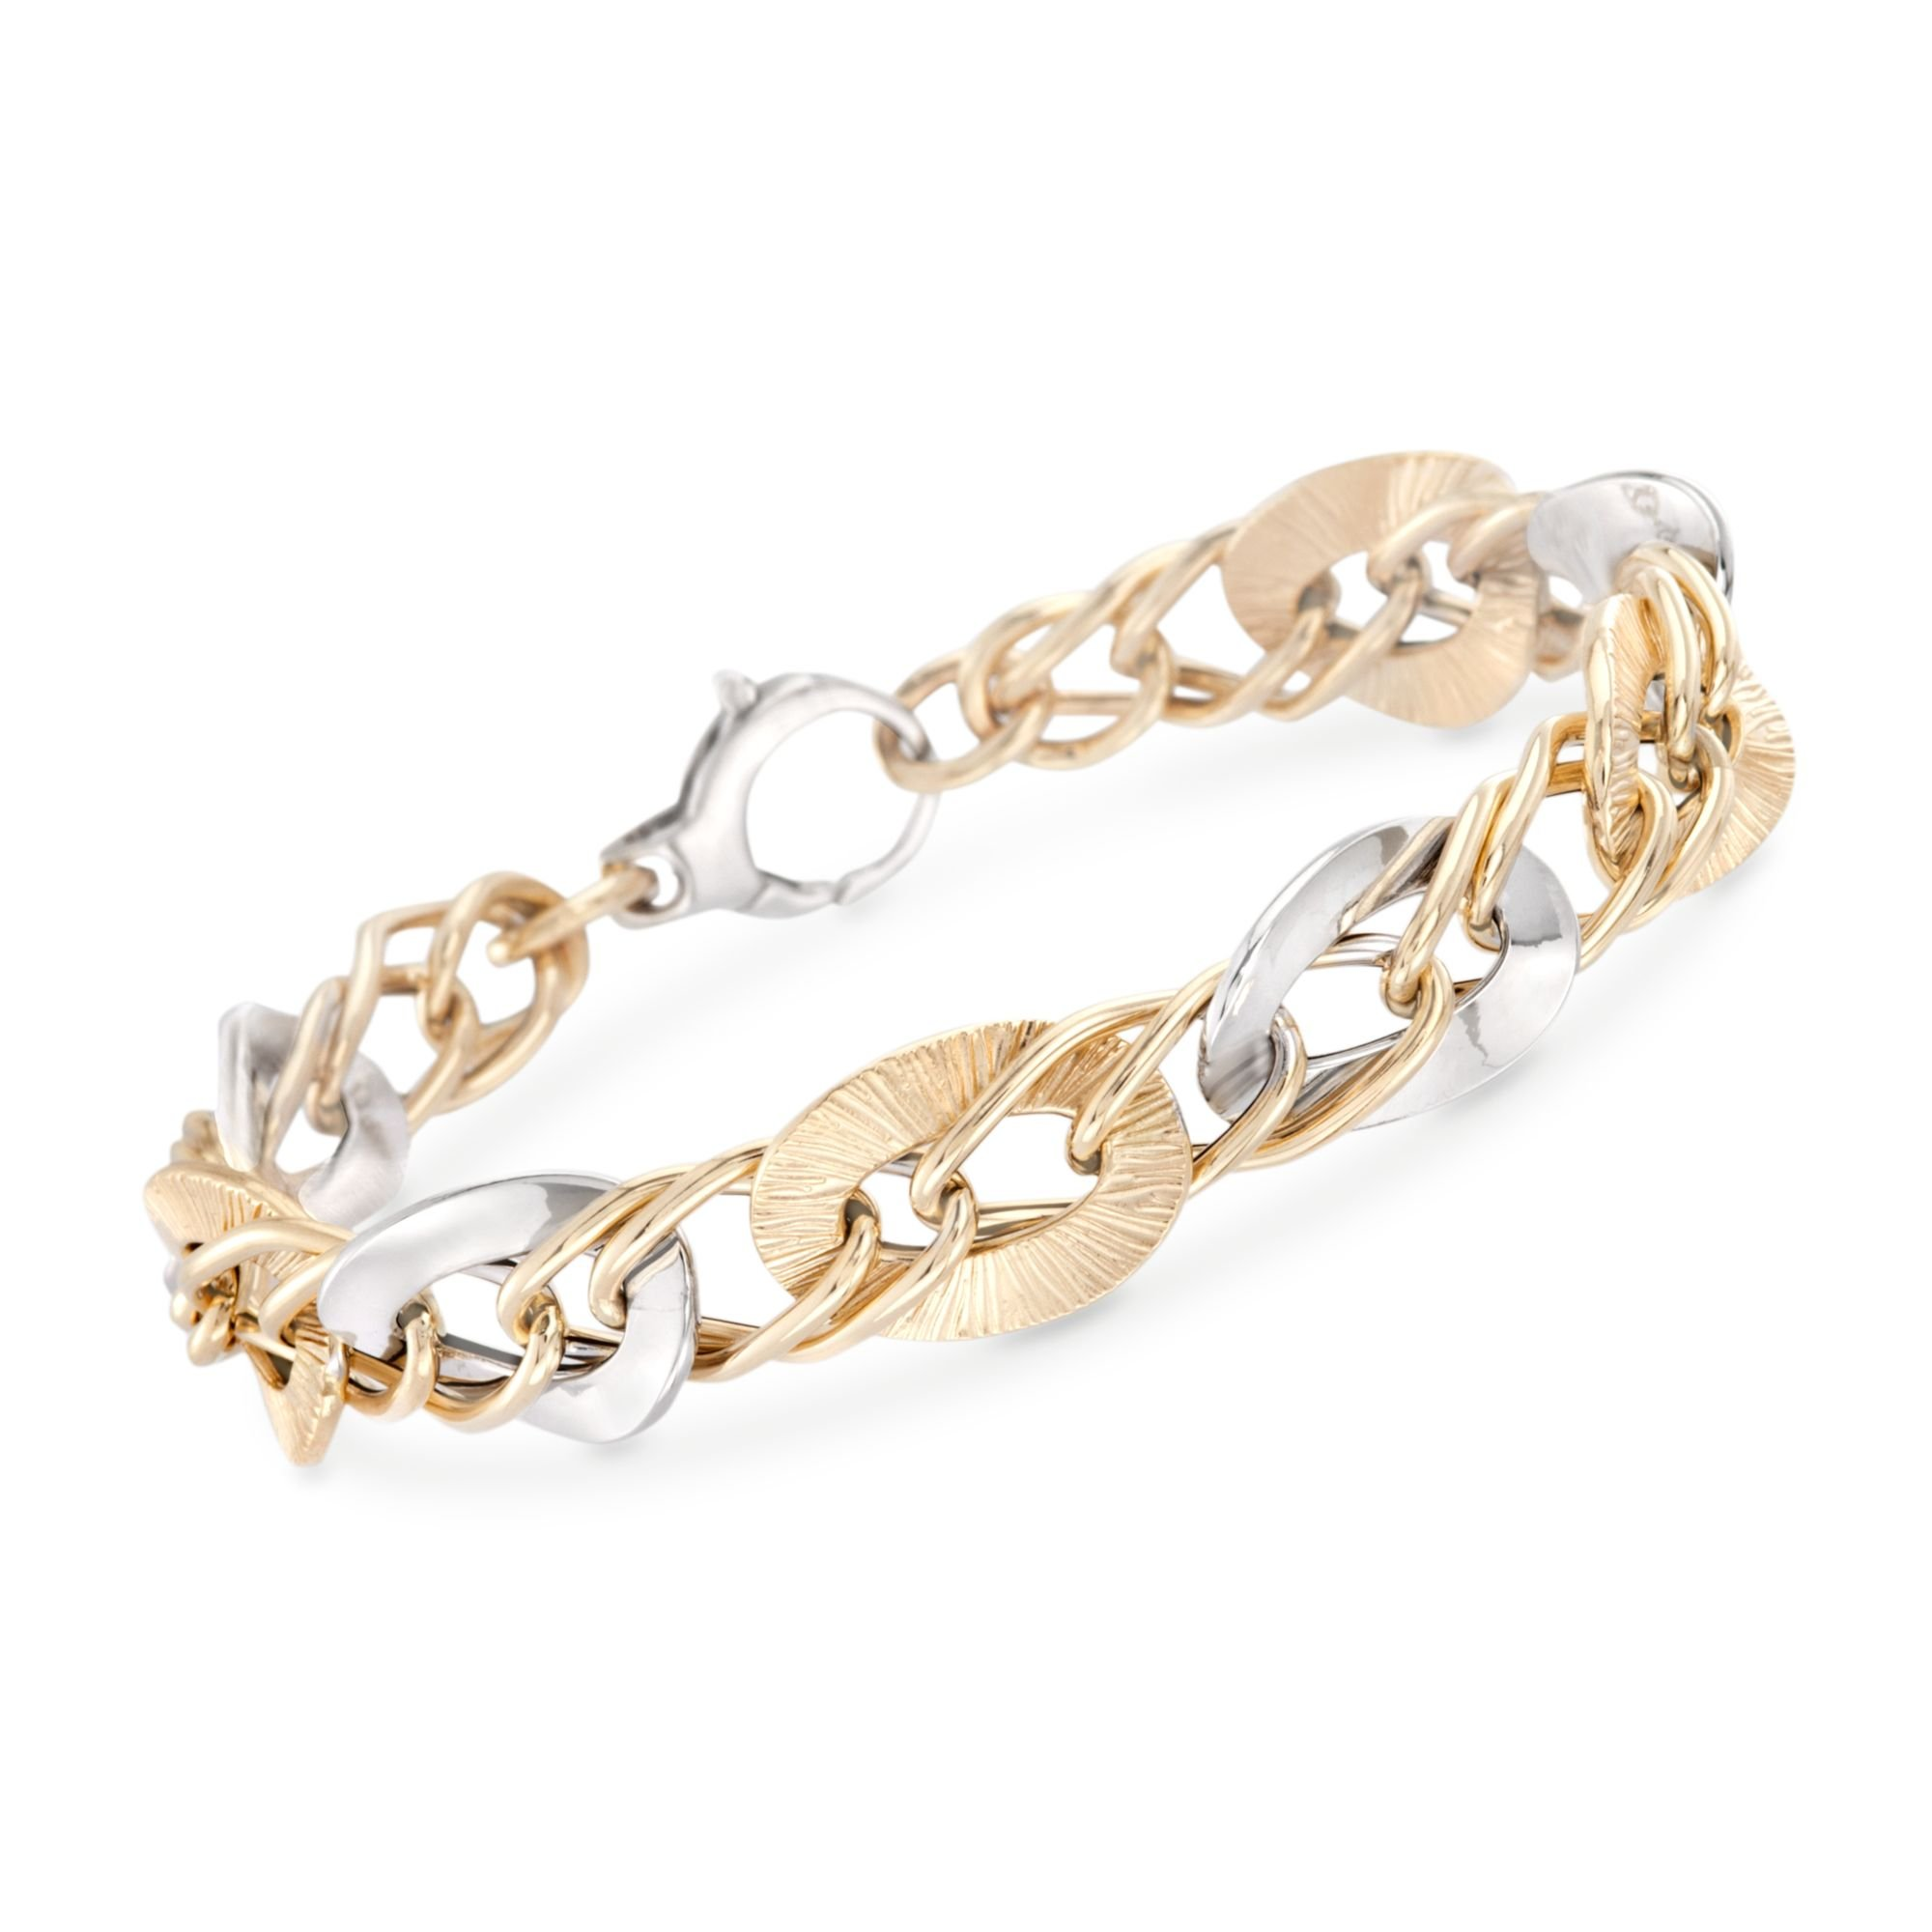 Ross-Simons ITALIAN 14kt TWO-TONE Gold Pleated and Polished LINK BRACELET